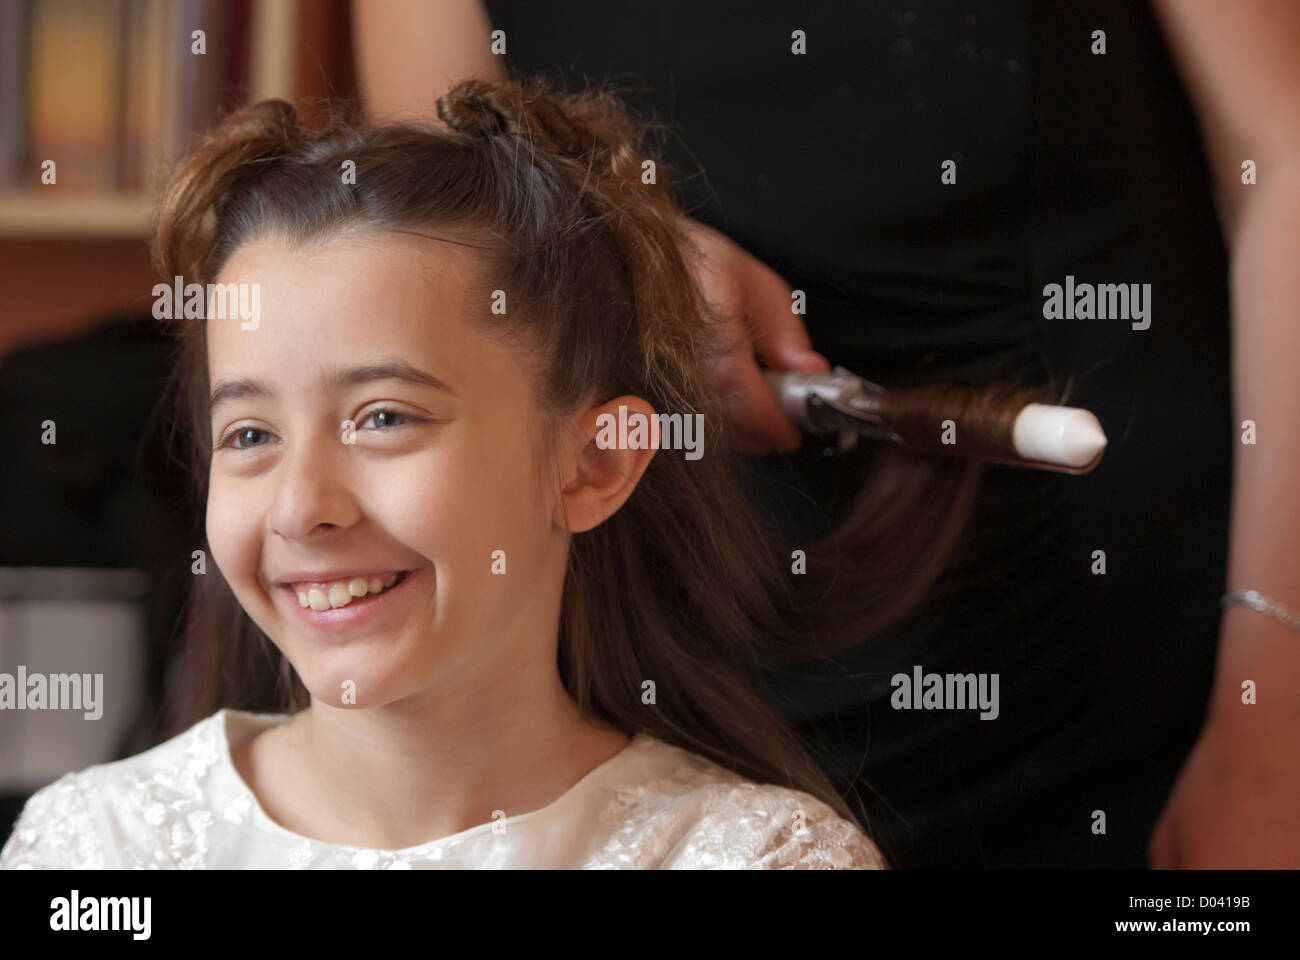 Young girl at the hairdresser, Firenze, Tuscany, Italy - Stock Image